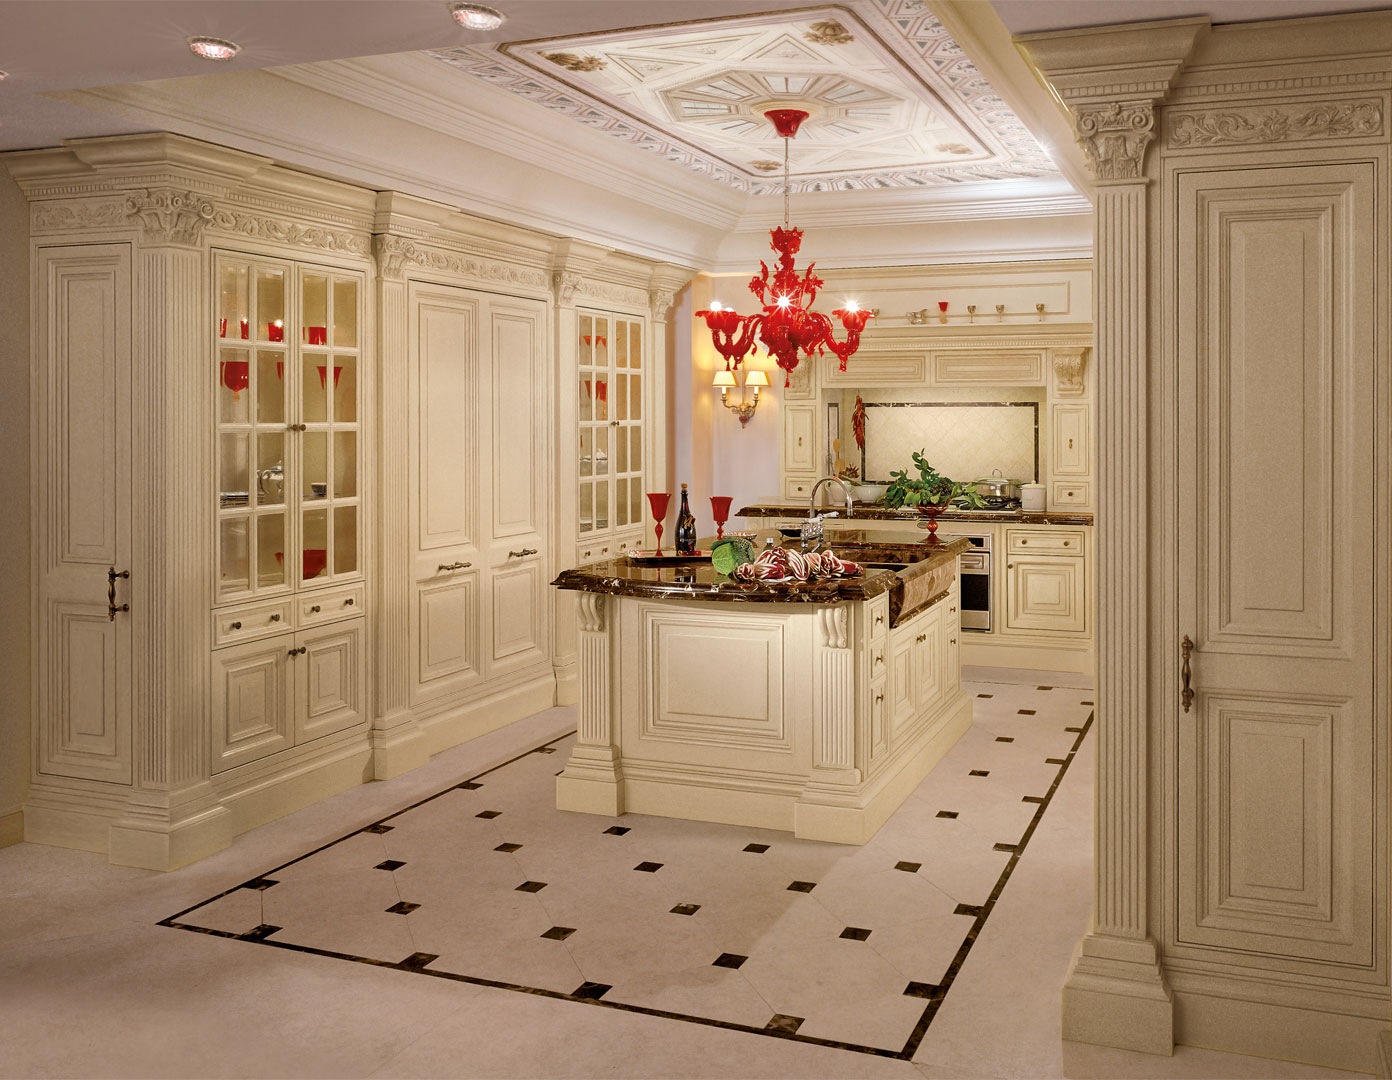 Luxury and prestige converge in this highly exclusive kitchen